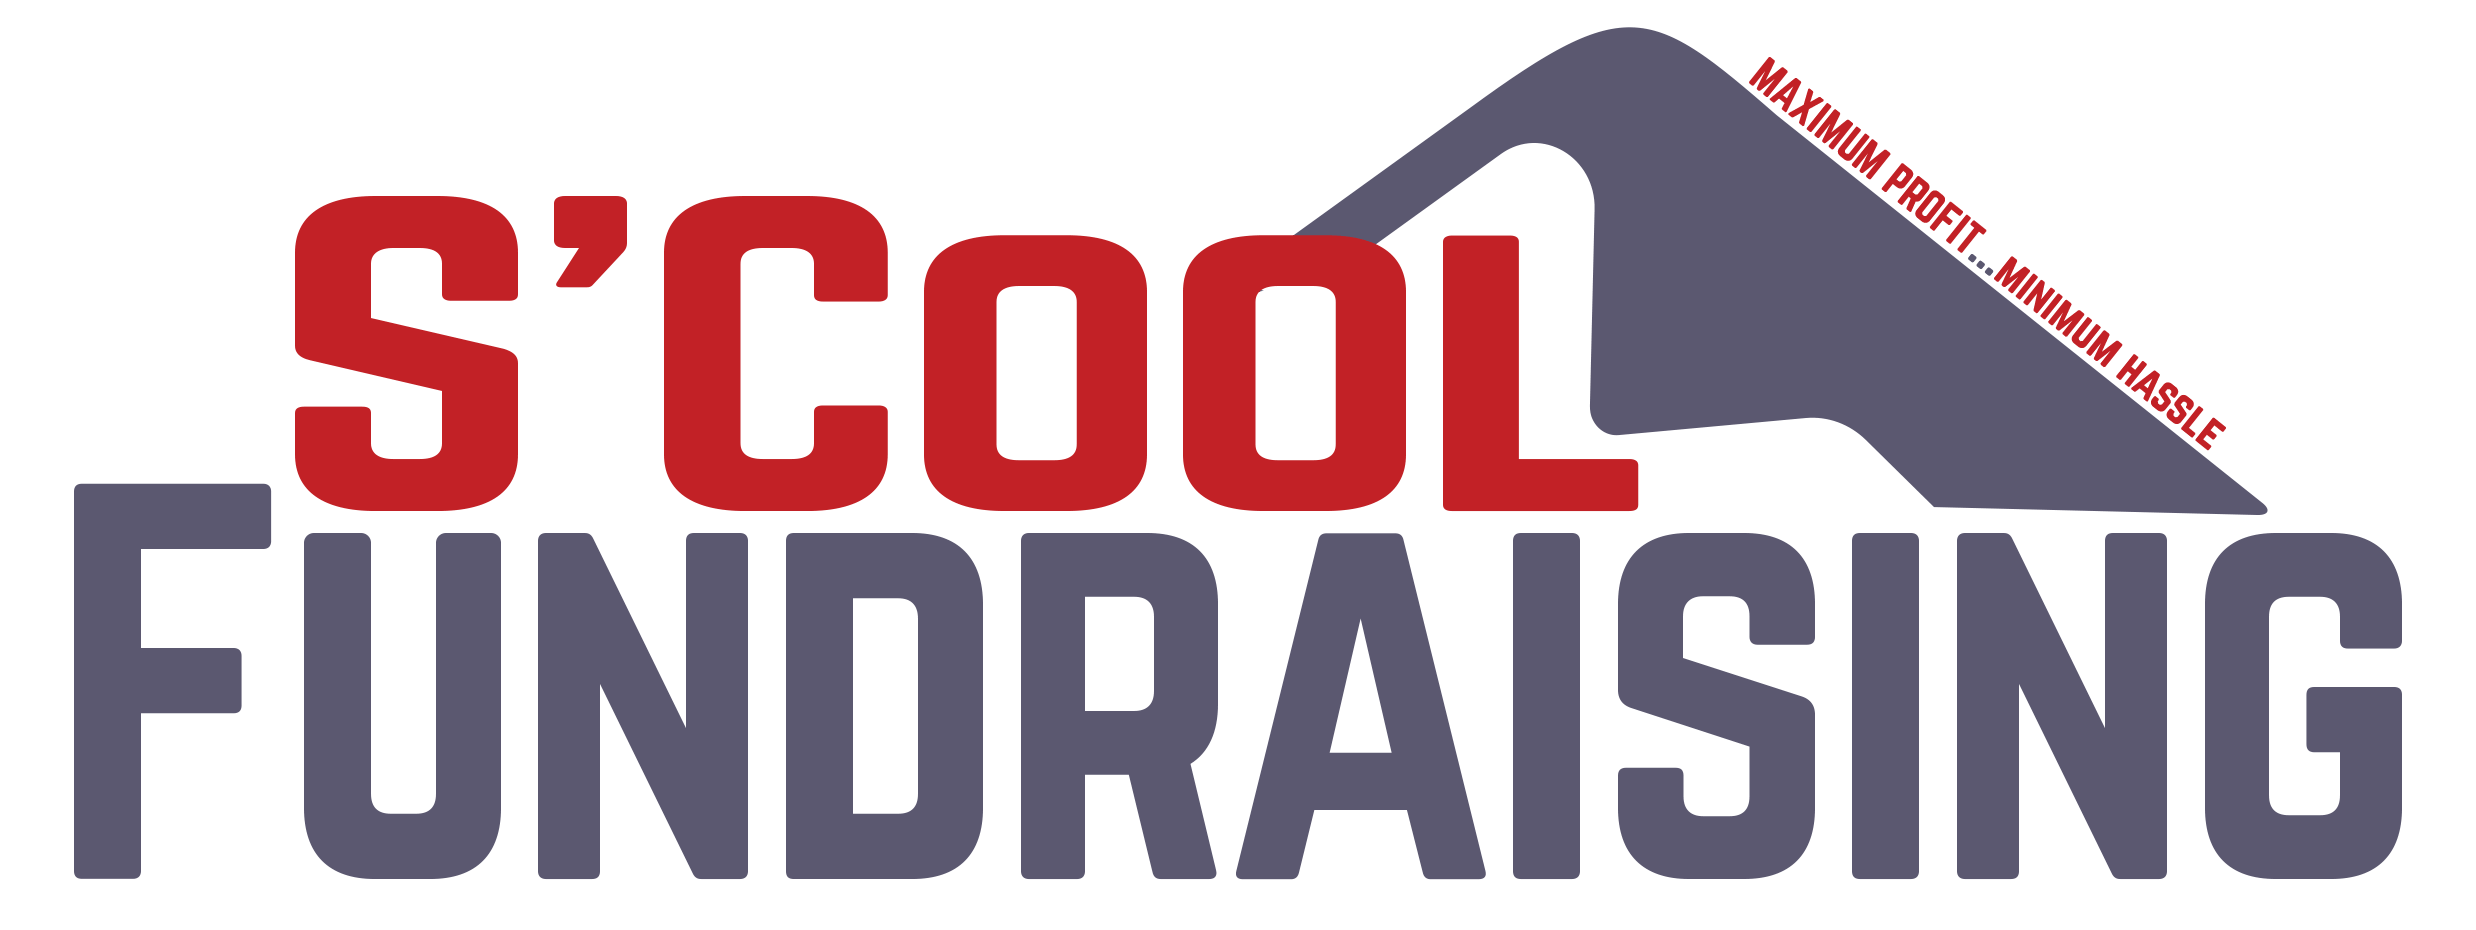 Scool Fundraising Logo_Tag line